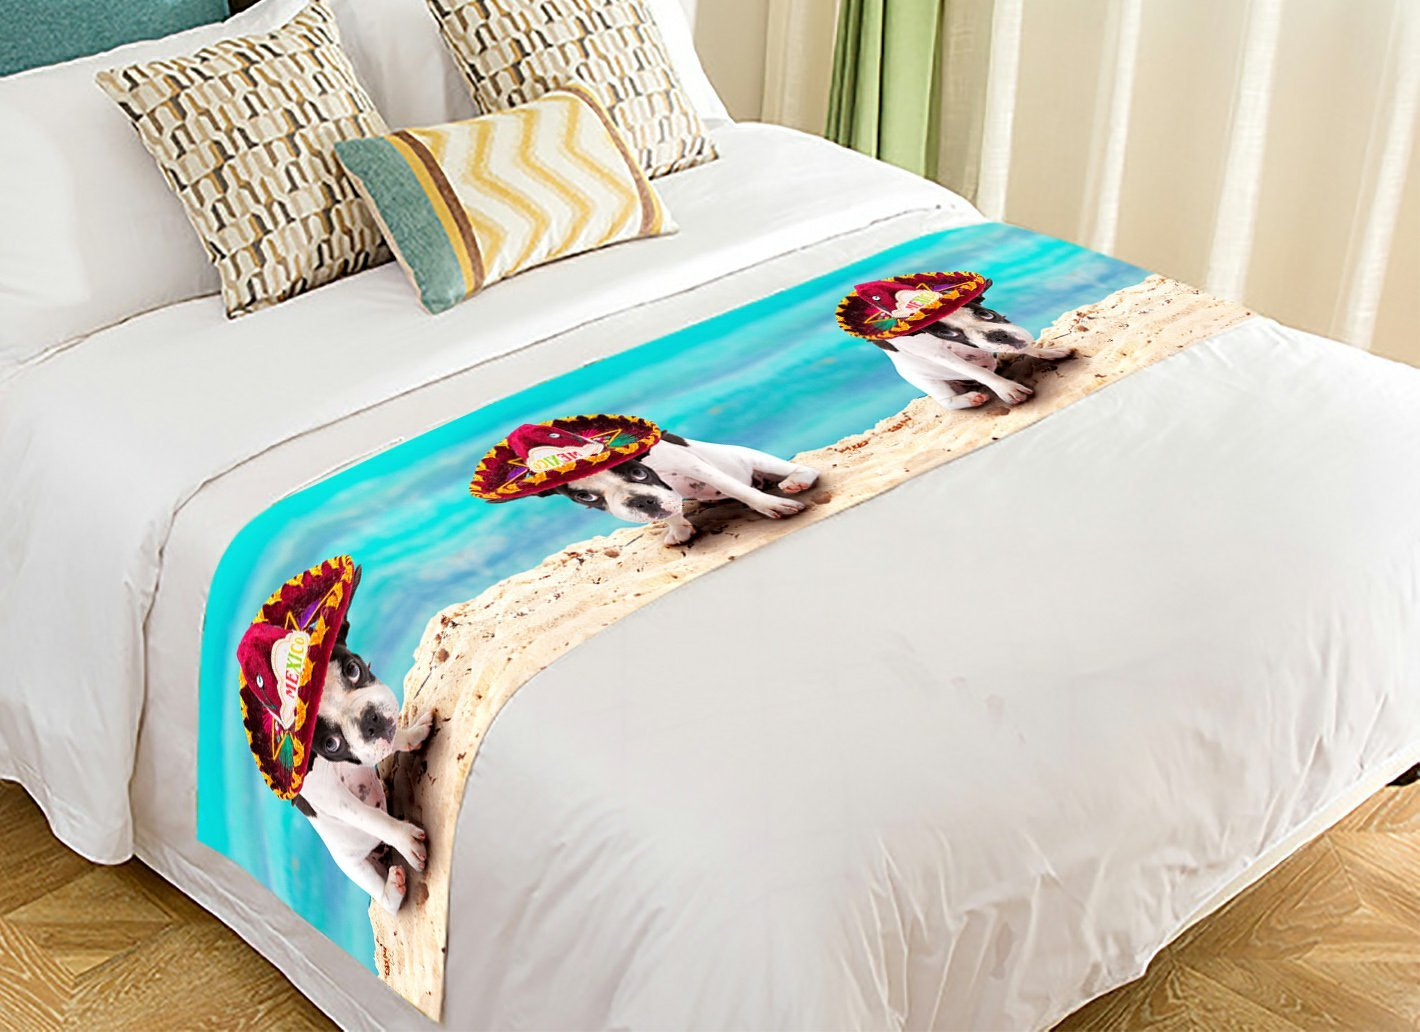 Custom Animal Bed Runner, French Bulldog Puppy in Mexican Sombrero on the Beach Bed Runners And Scarves Bed Decoration 20x95 inch